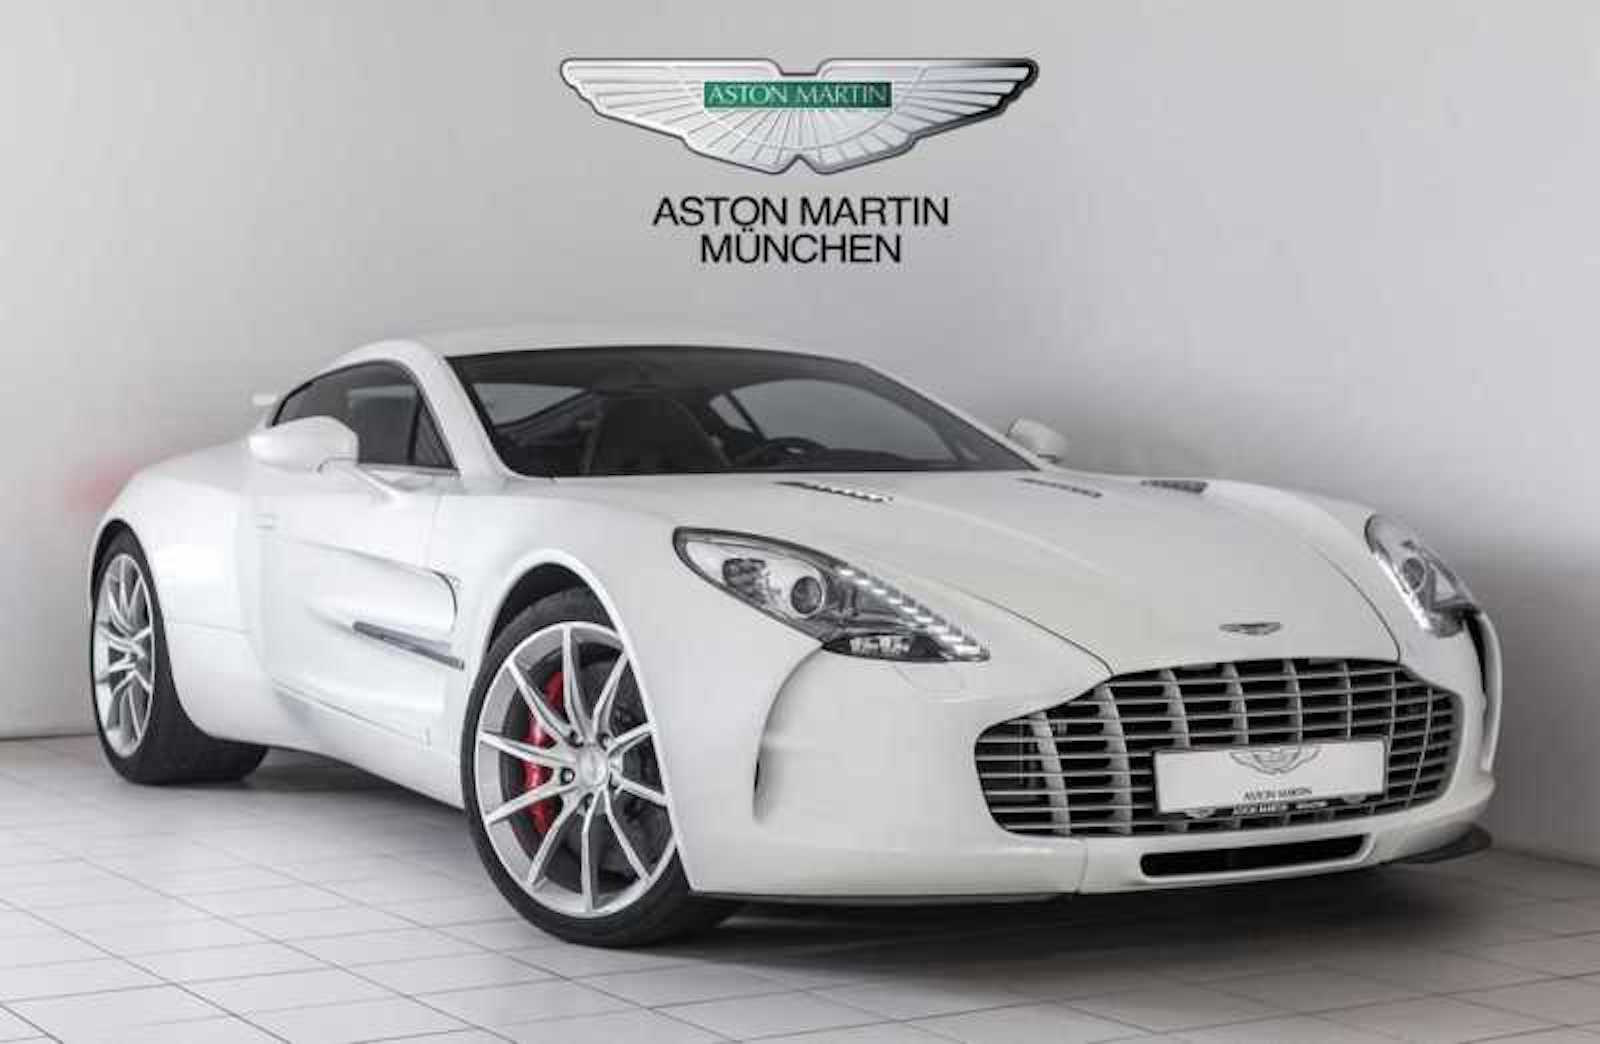 Ford Suvs For Sale An Aston Martin One-77 can be yours, for $3.35 million